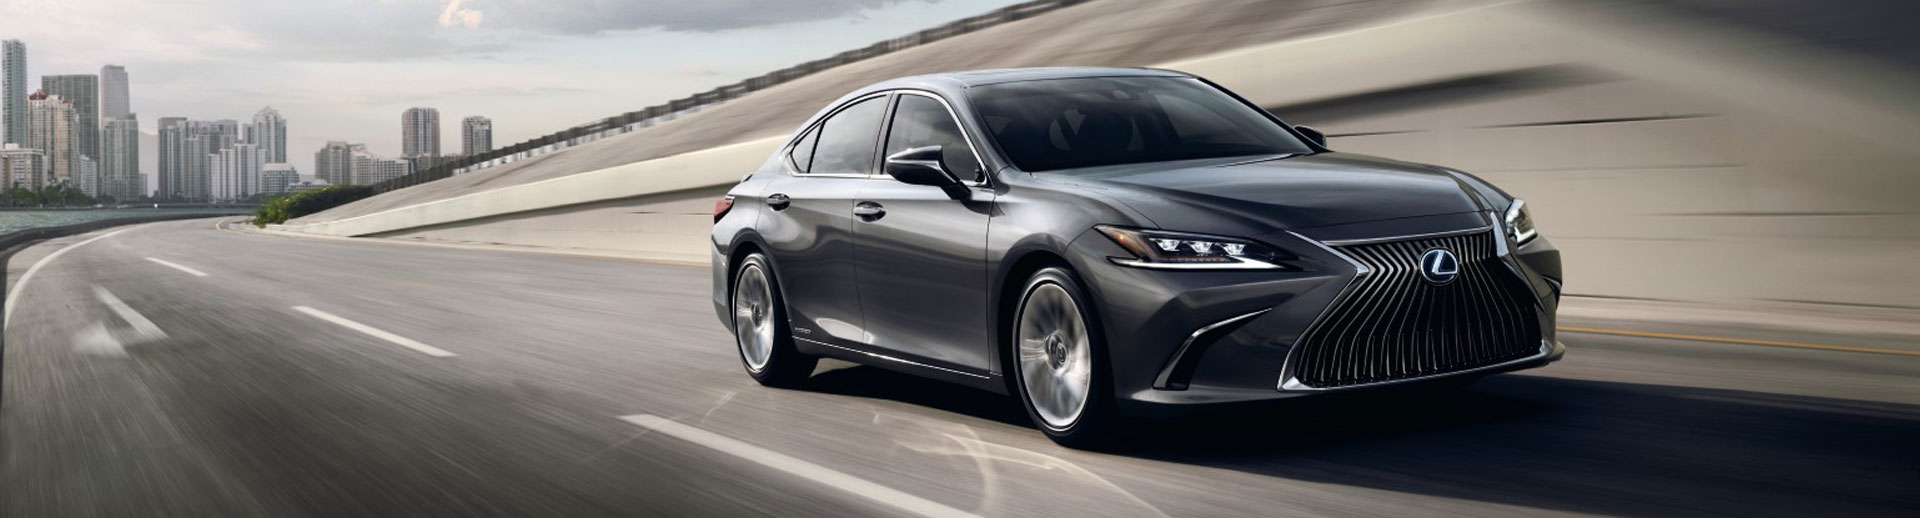 2021 Lexus ES 250 Lifestyle Photo